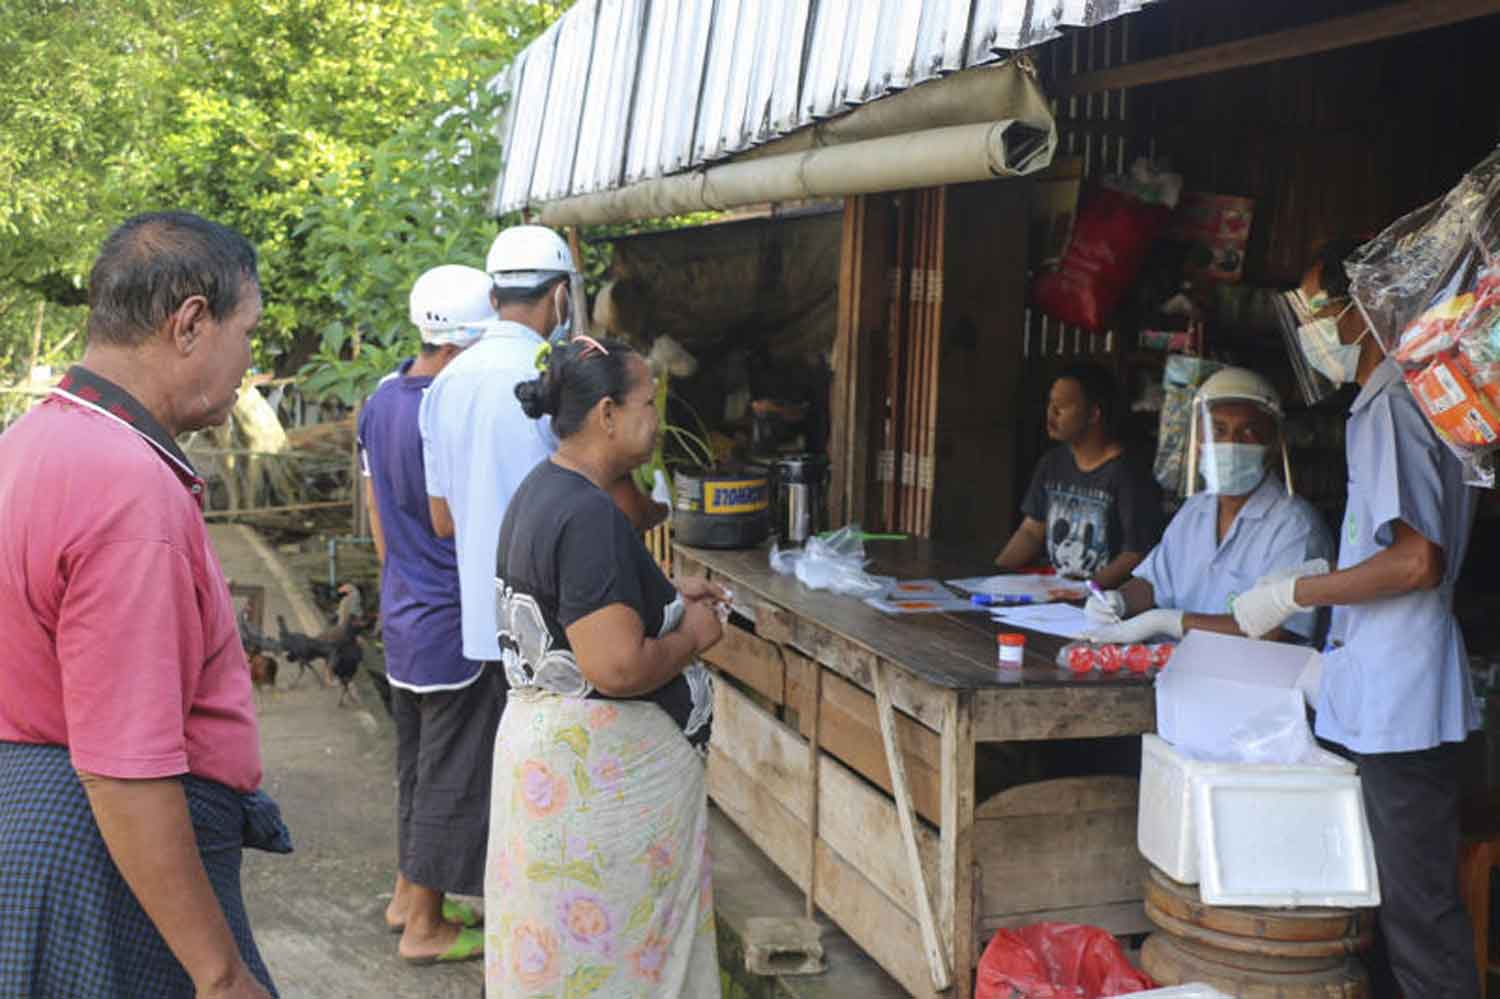 Health workers collect samples from people living near the Myanmar border in Sangkhlaburi district, Kanchanaburi, for Covid-19 testing, on Friday. (Photo: Piyarach Chongcharoen)